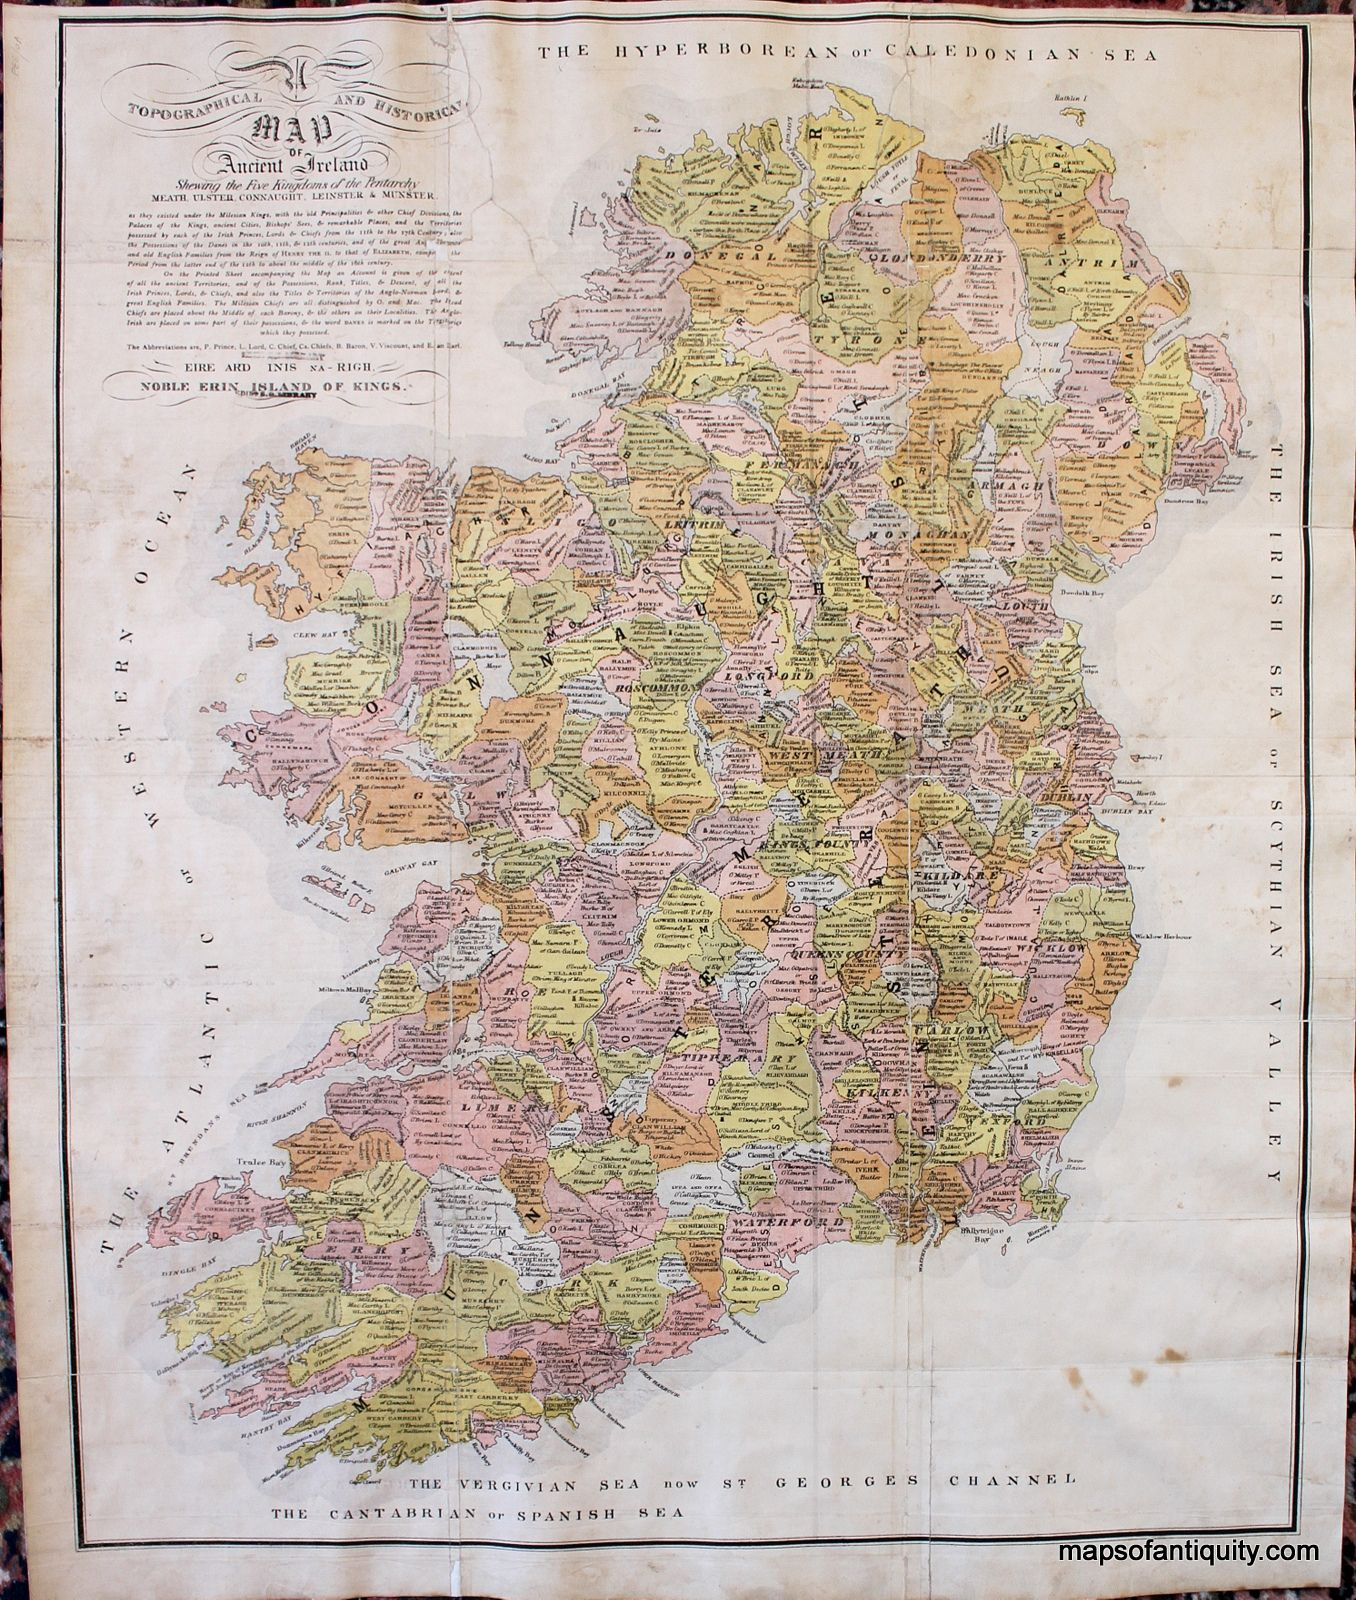 High Quality Map Of Ireland.Interesting Clan Map Of Ireland Showing Counties And Regions